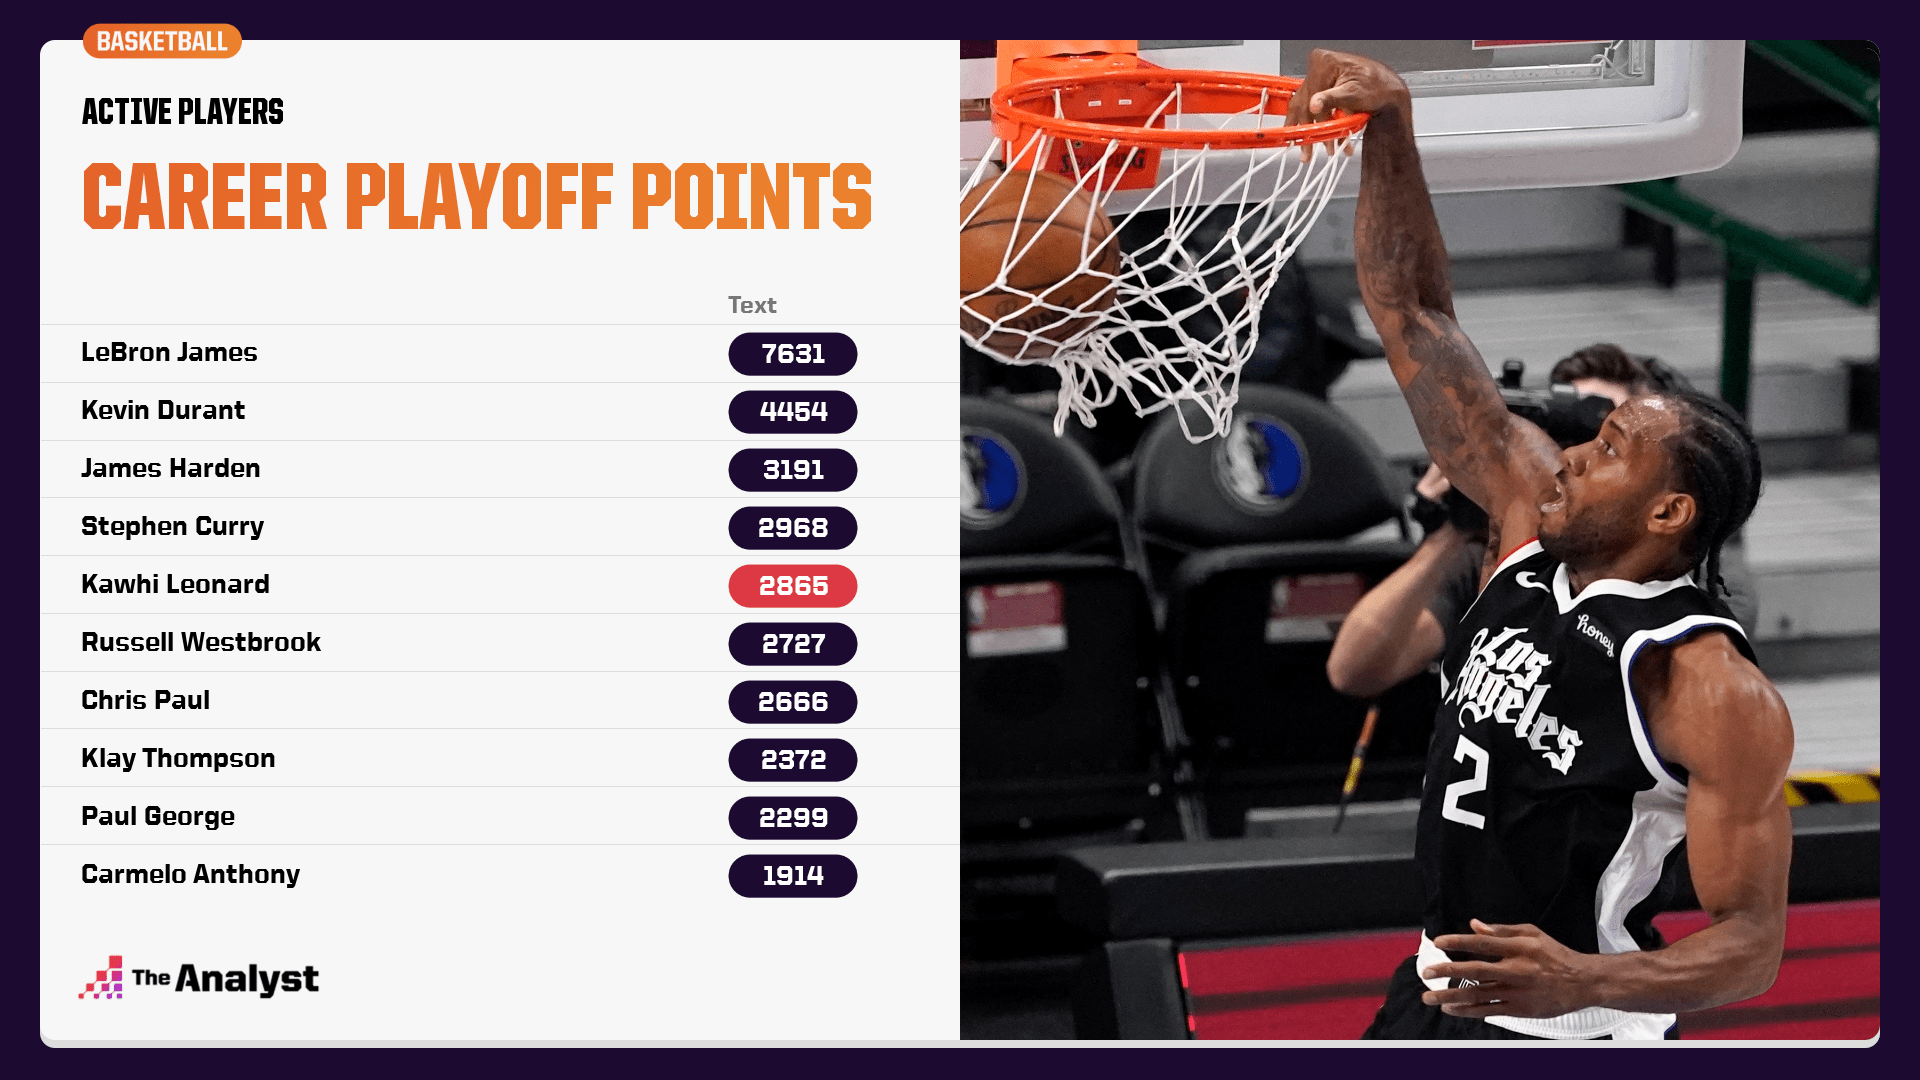 Career Playoff Points Active Players